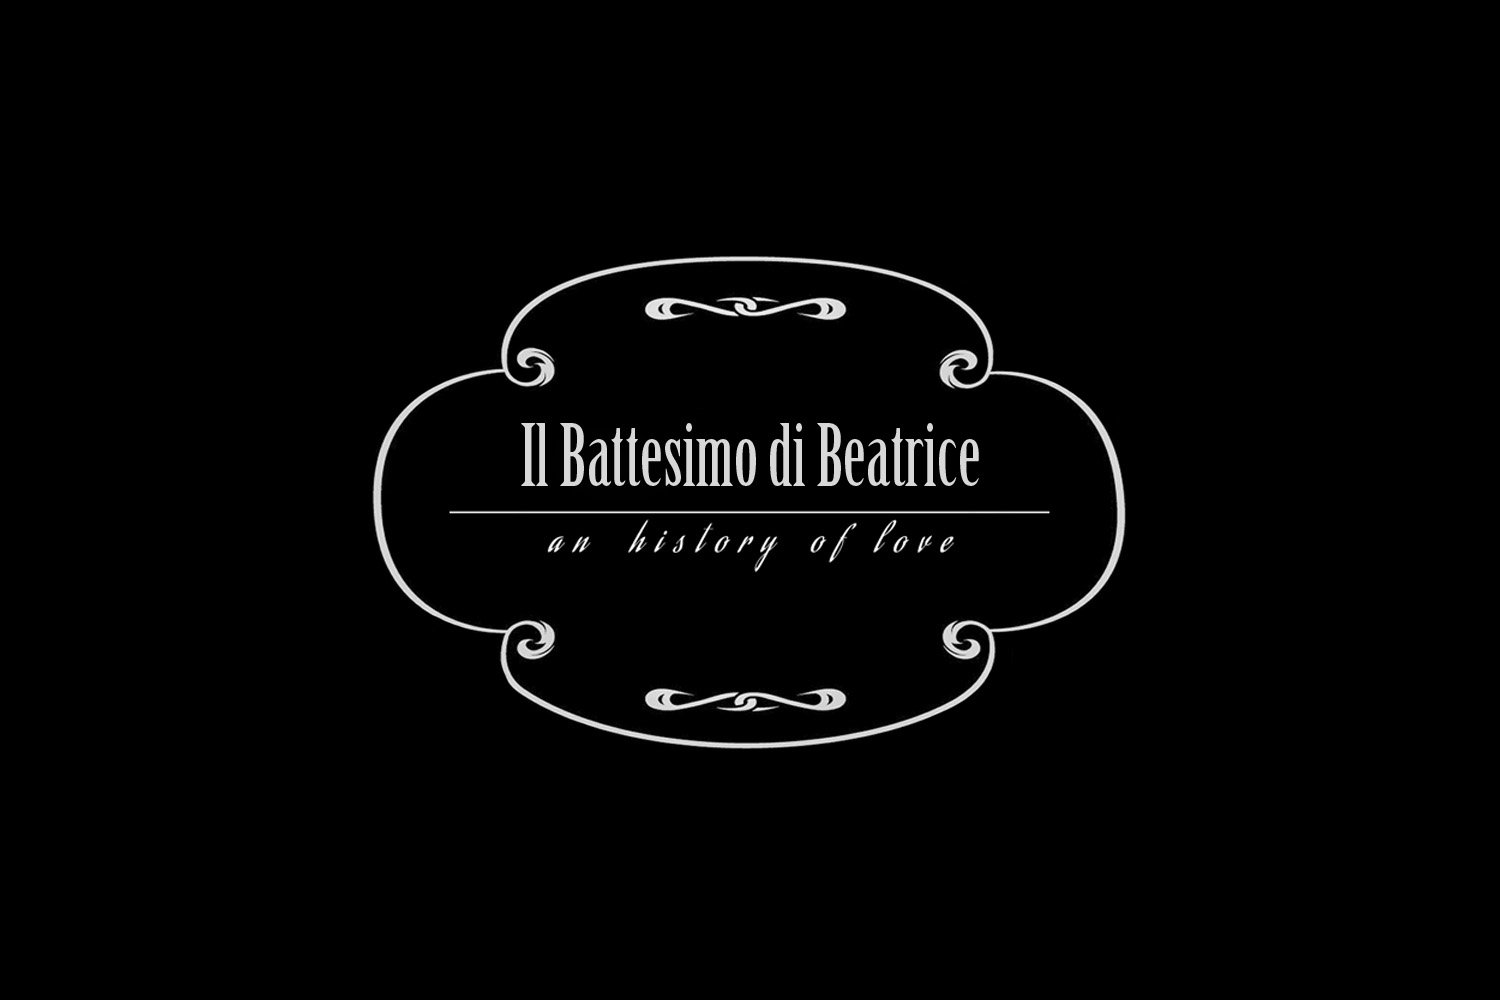 Rovereto Battesimo Beatrice 0005